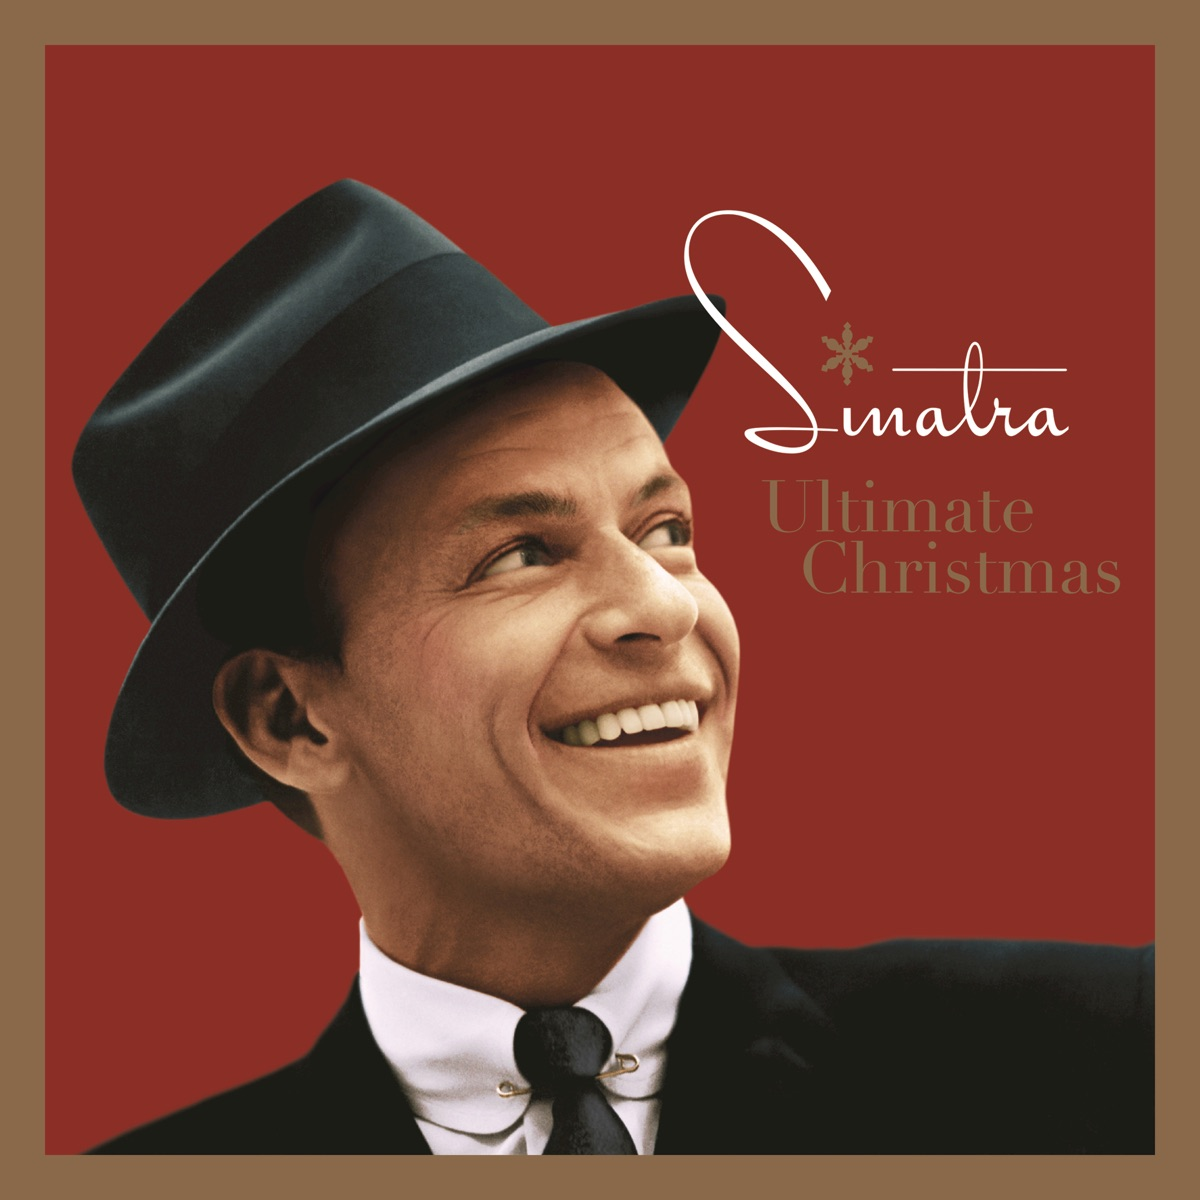 Ultimate Christmas Album Cover By Frank Sinatra